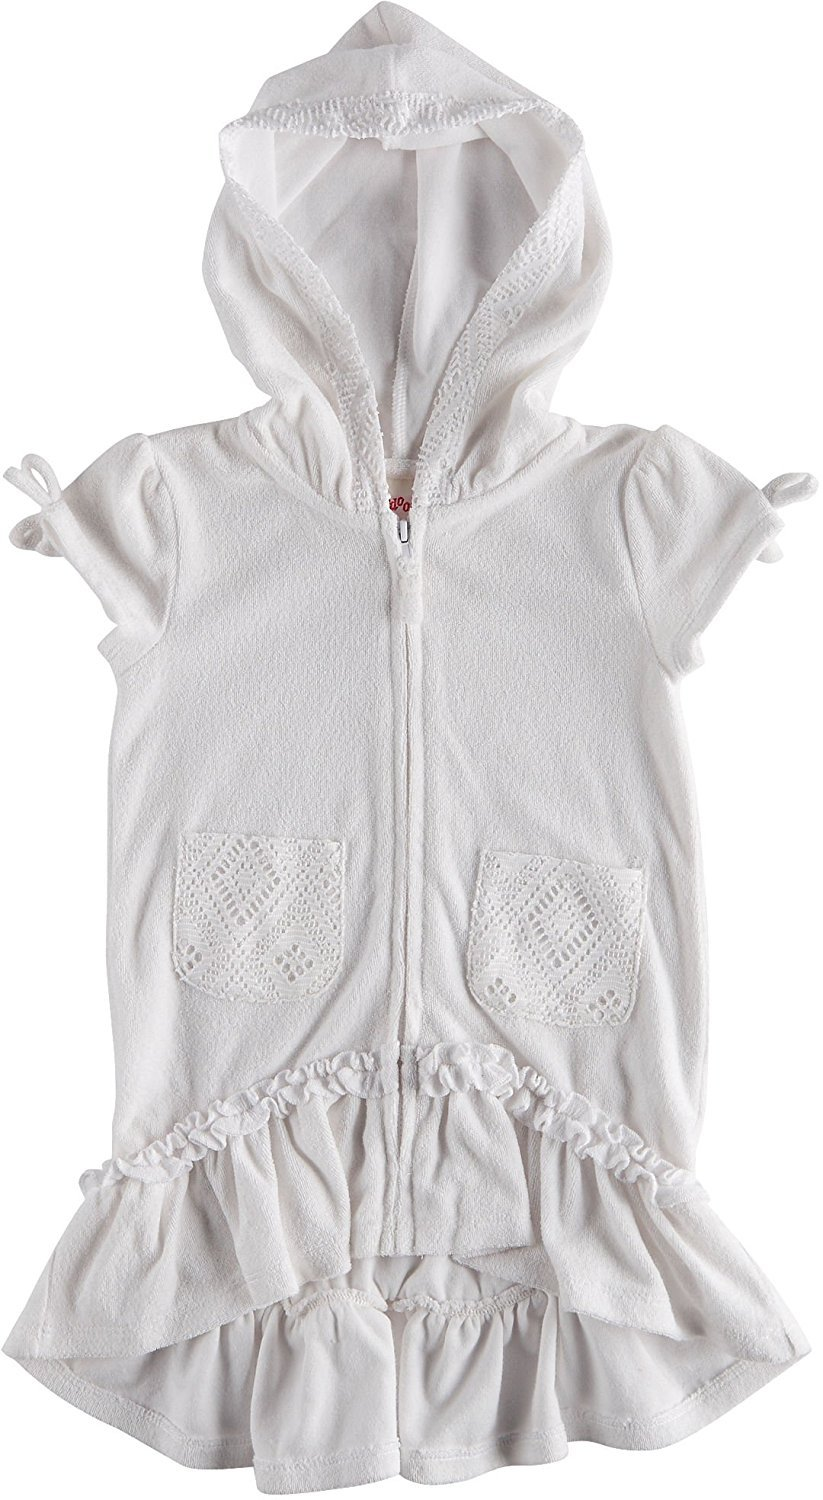 Flapdoodles Girls' Terry Hooded Swimsuit Beach Cover up (12M, White)